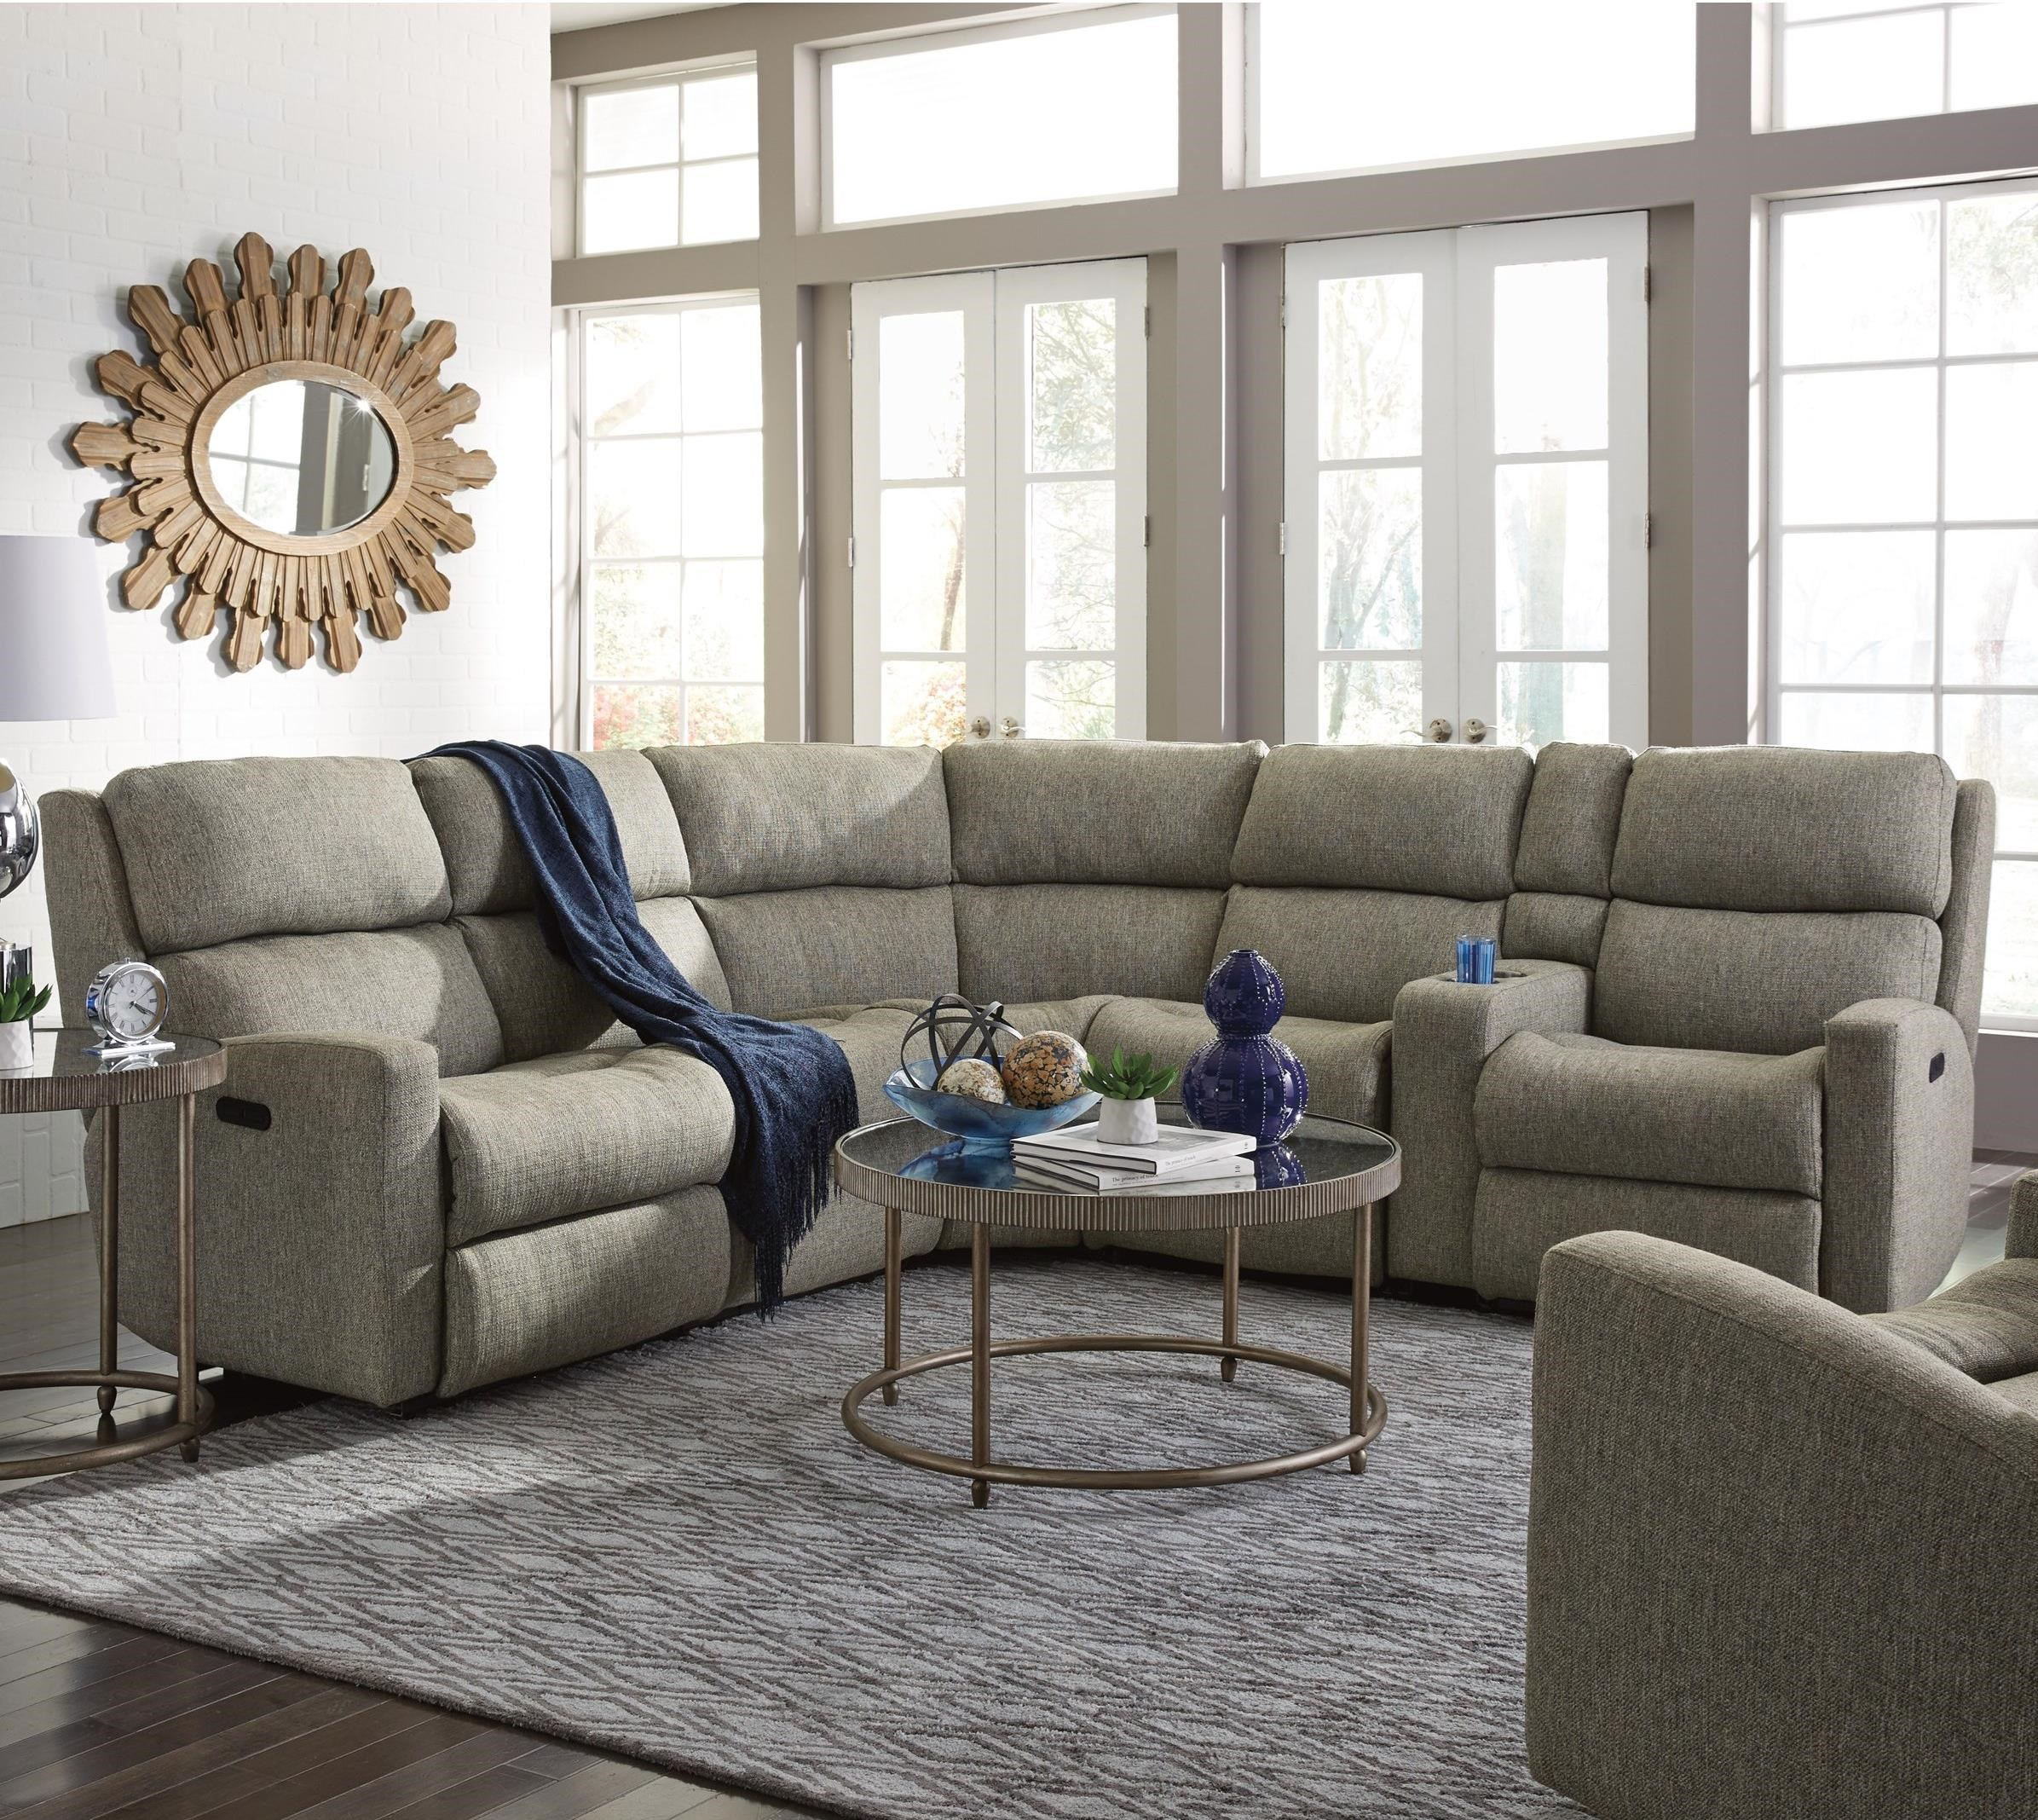 Flexsteel Catalina 6 Pc Reclining Sectional Sofa - Item Number: 2900-57+59+23+19+72+58